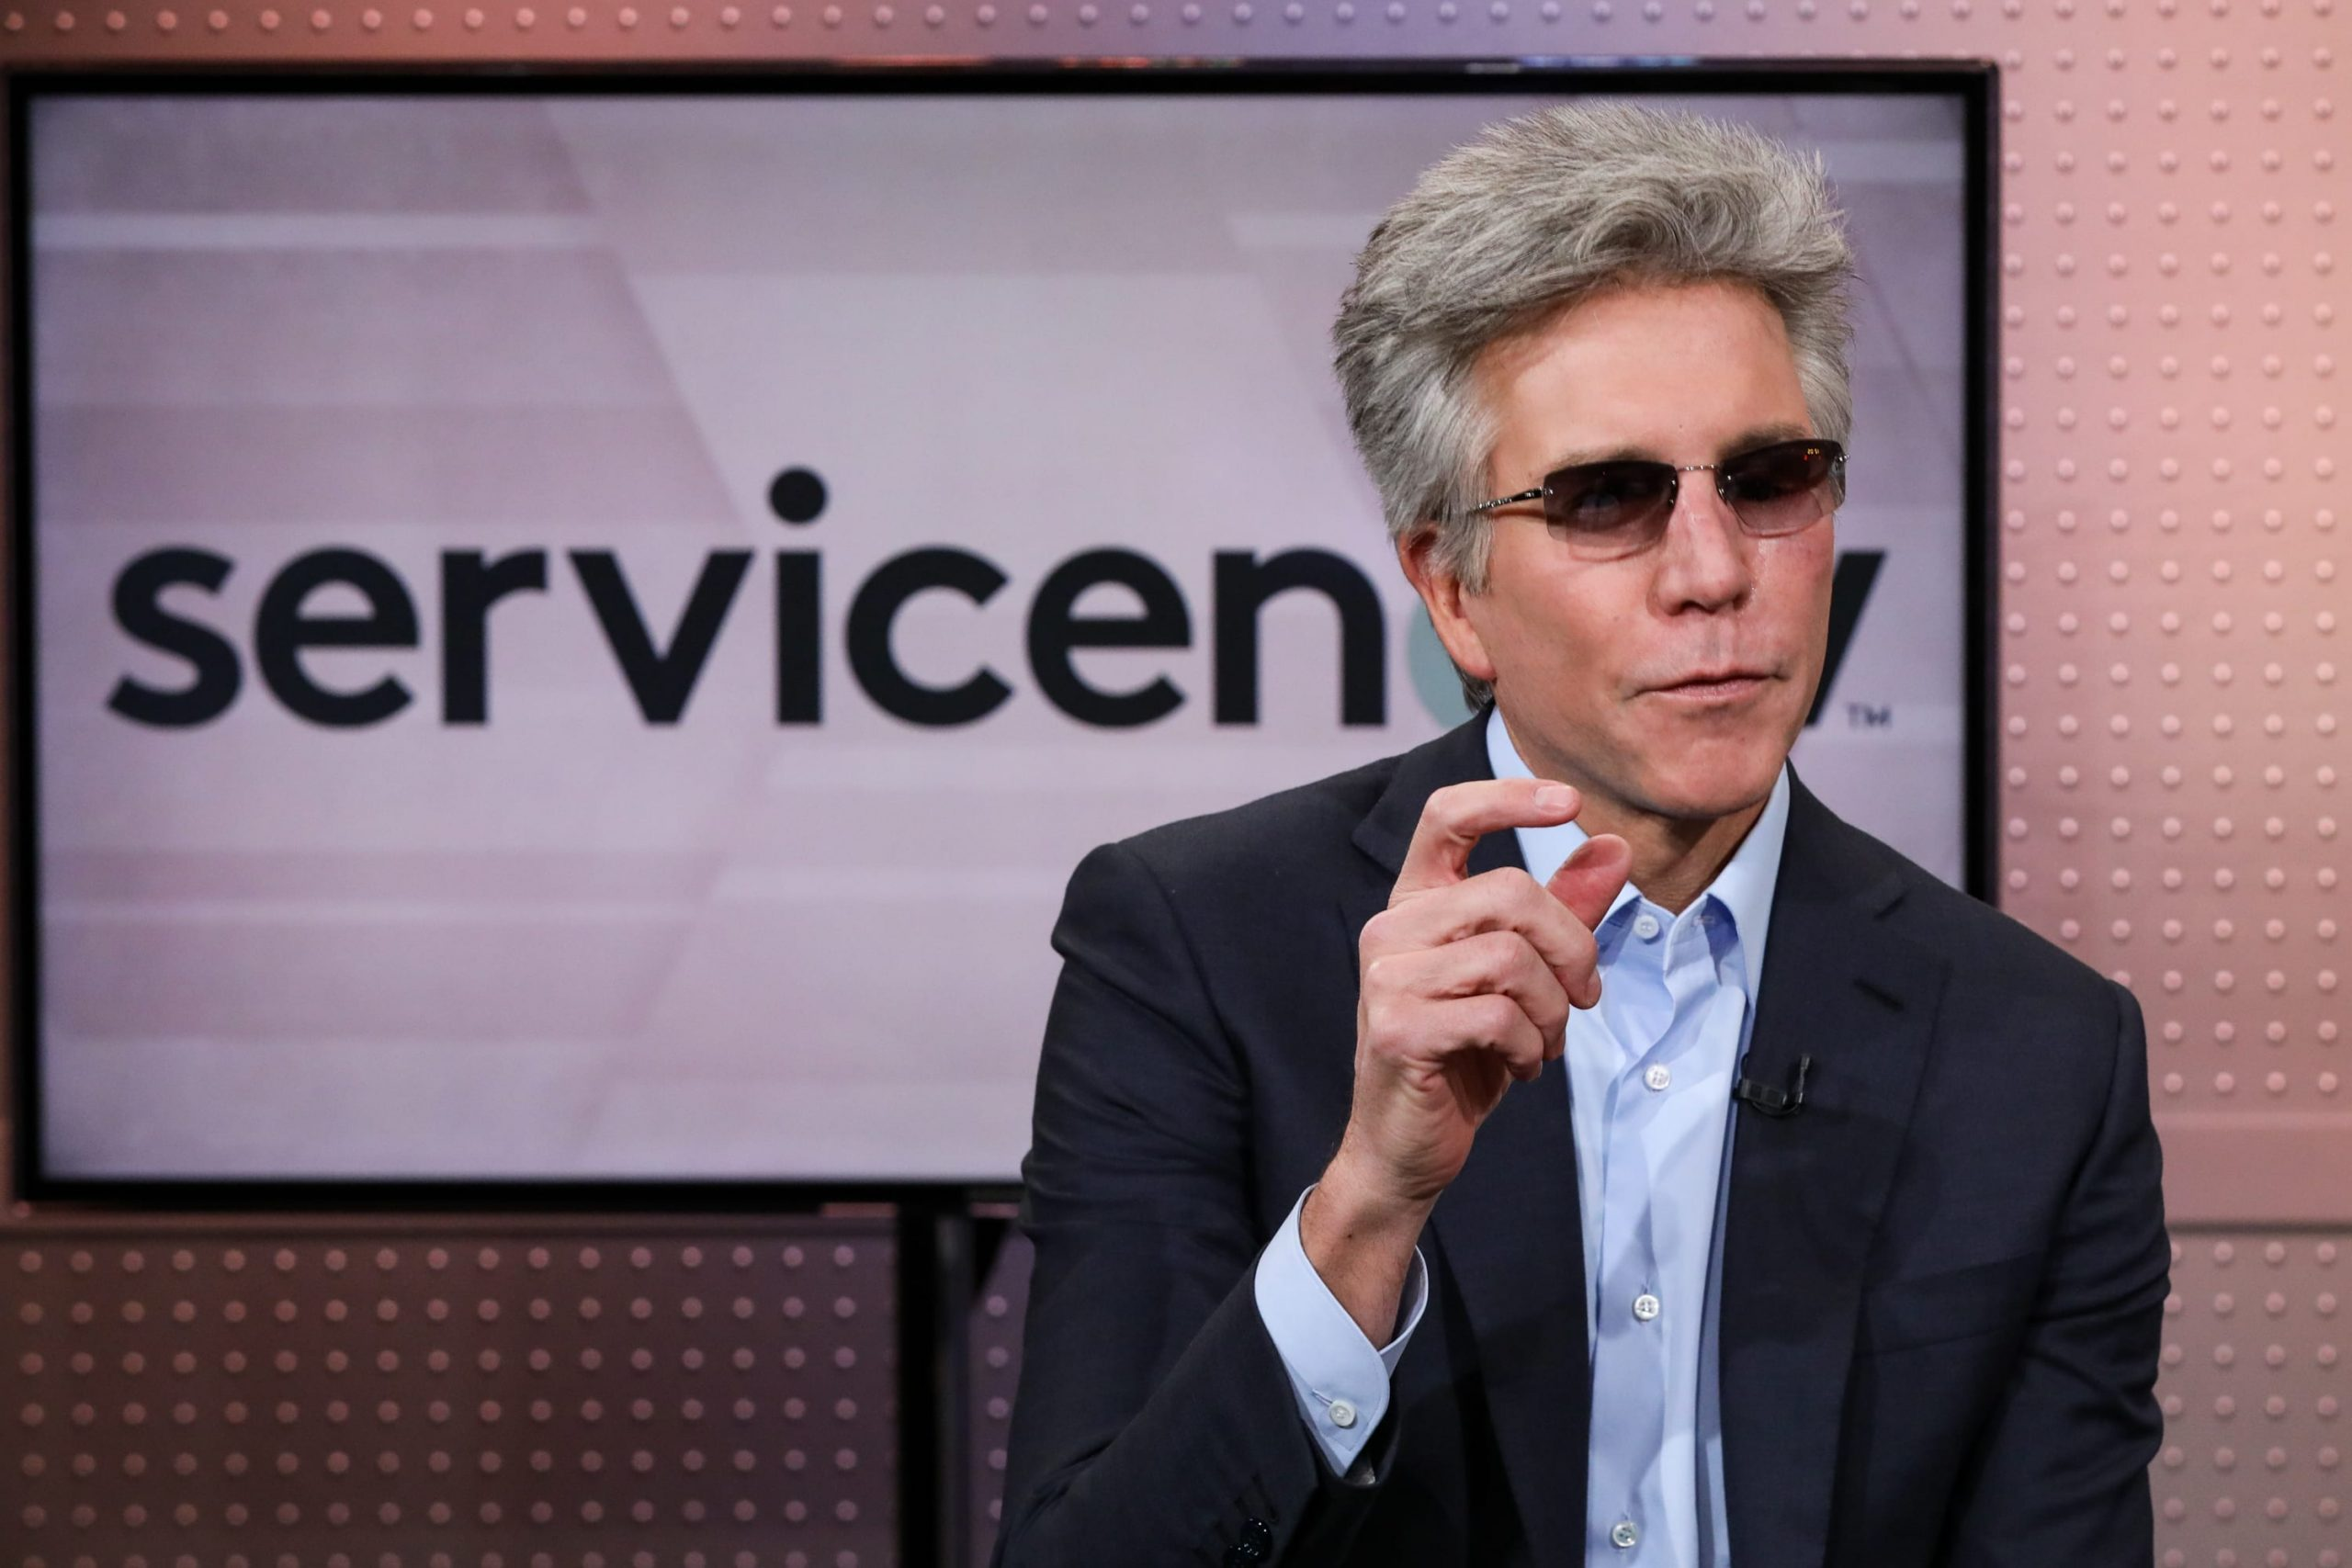 ServiceNow CEO says digital transformation is the 'opportunity of this generation'